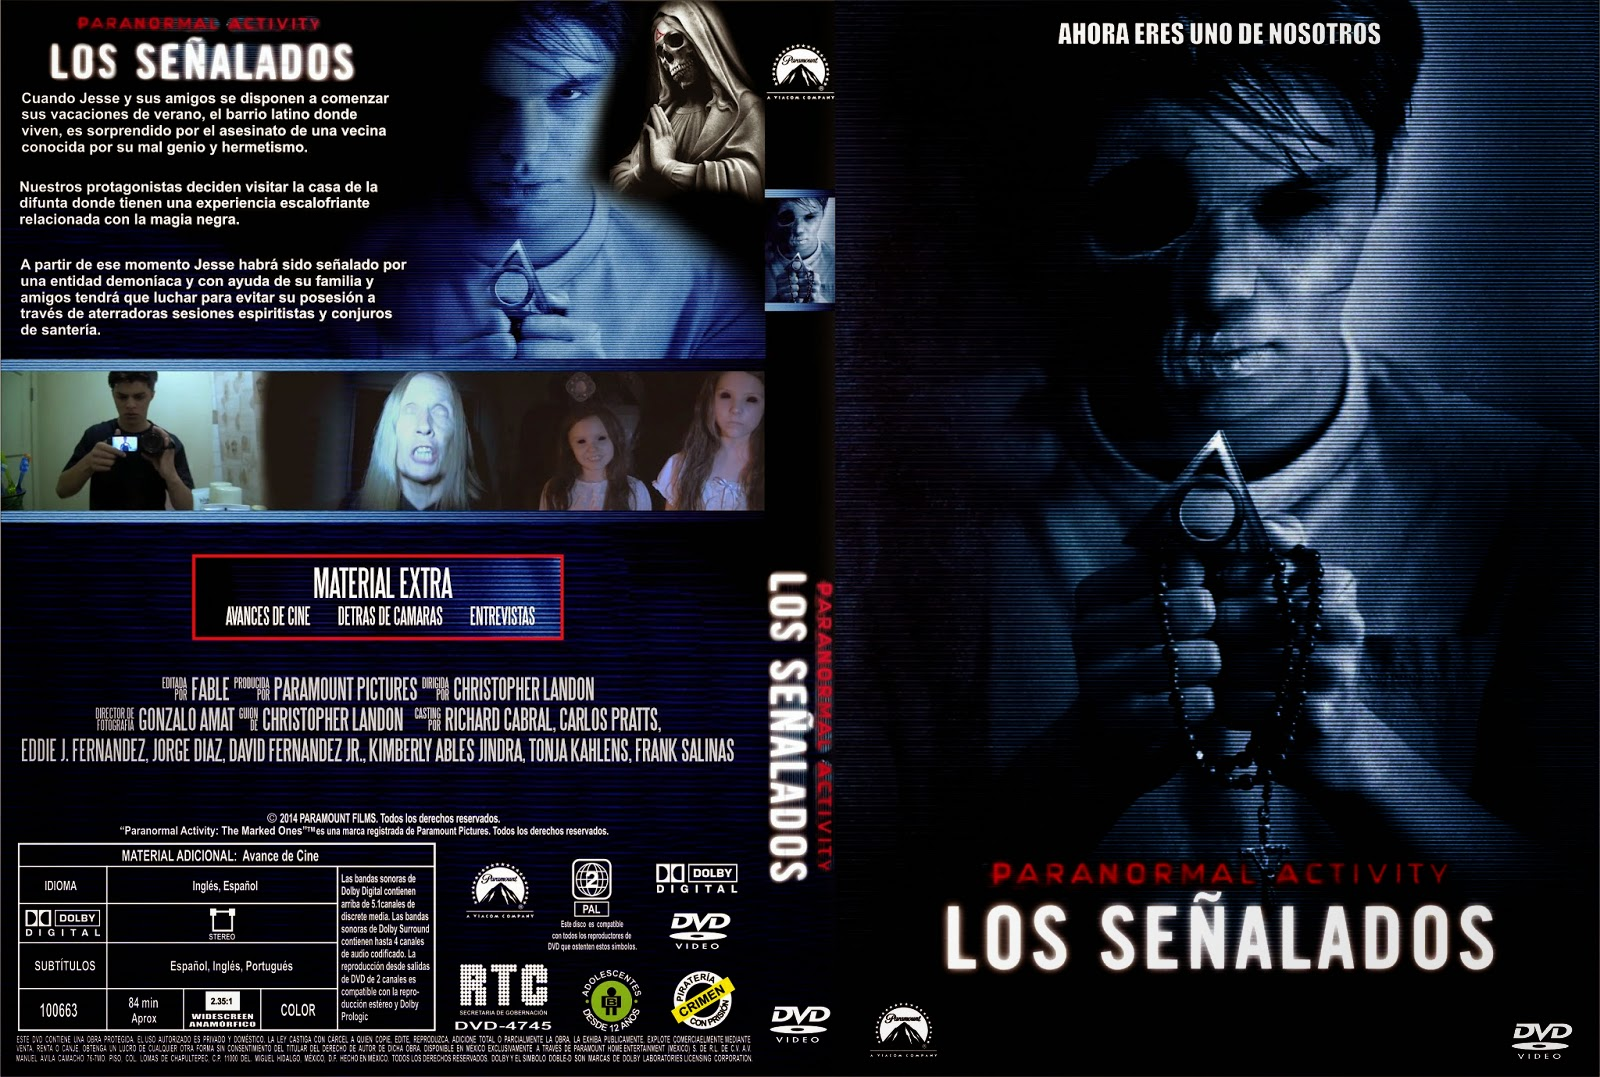 Paranormal Activity Los Señalados DVD